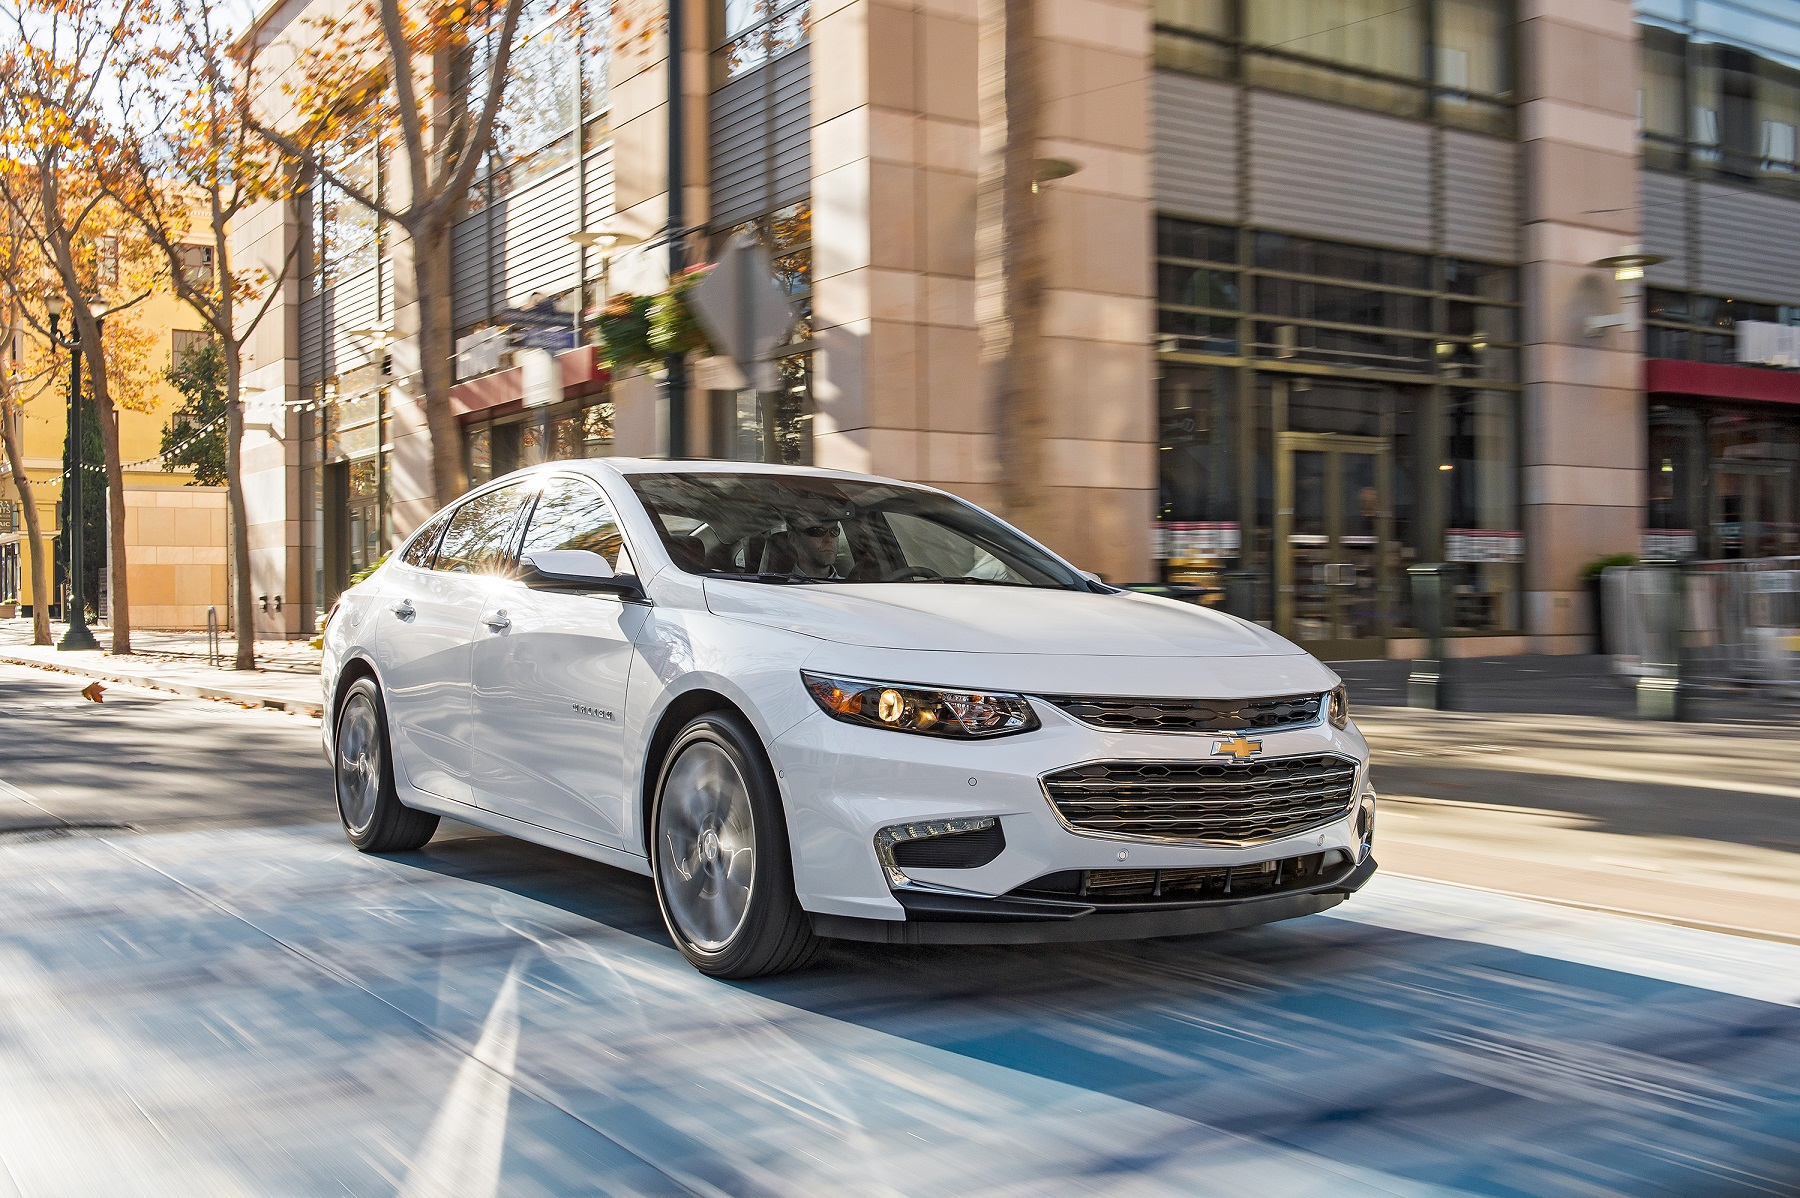 2017 Chevrolet Malibu solid midsize family sedan